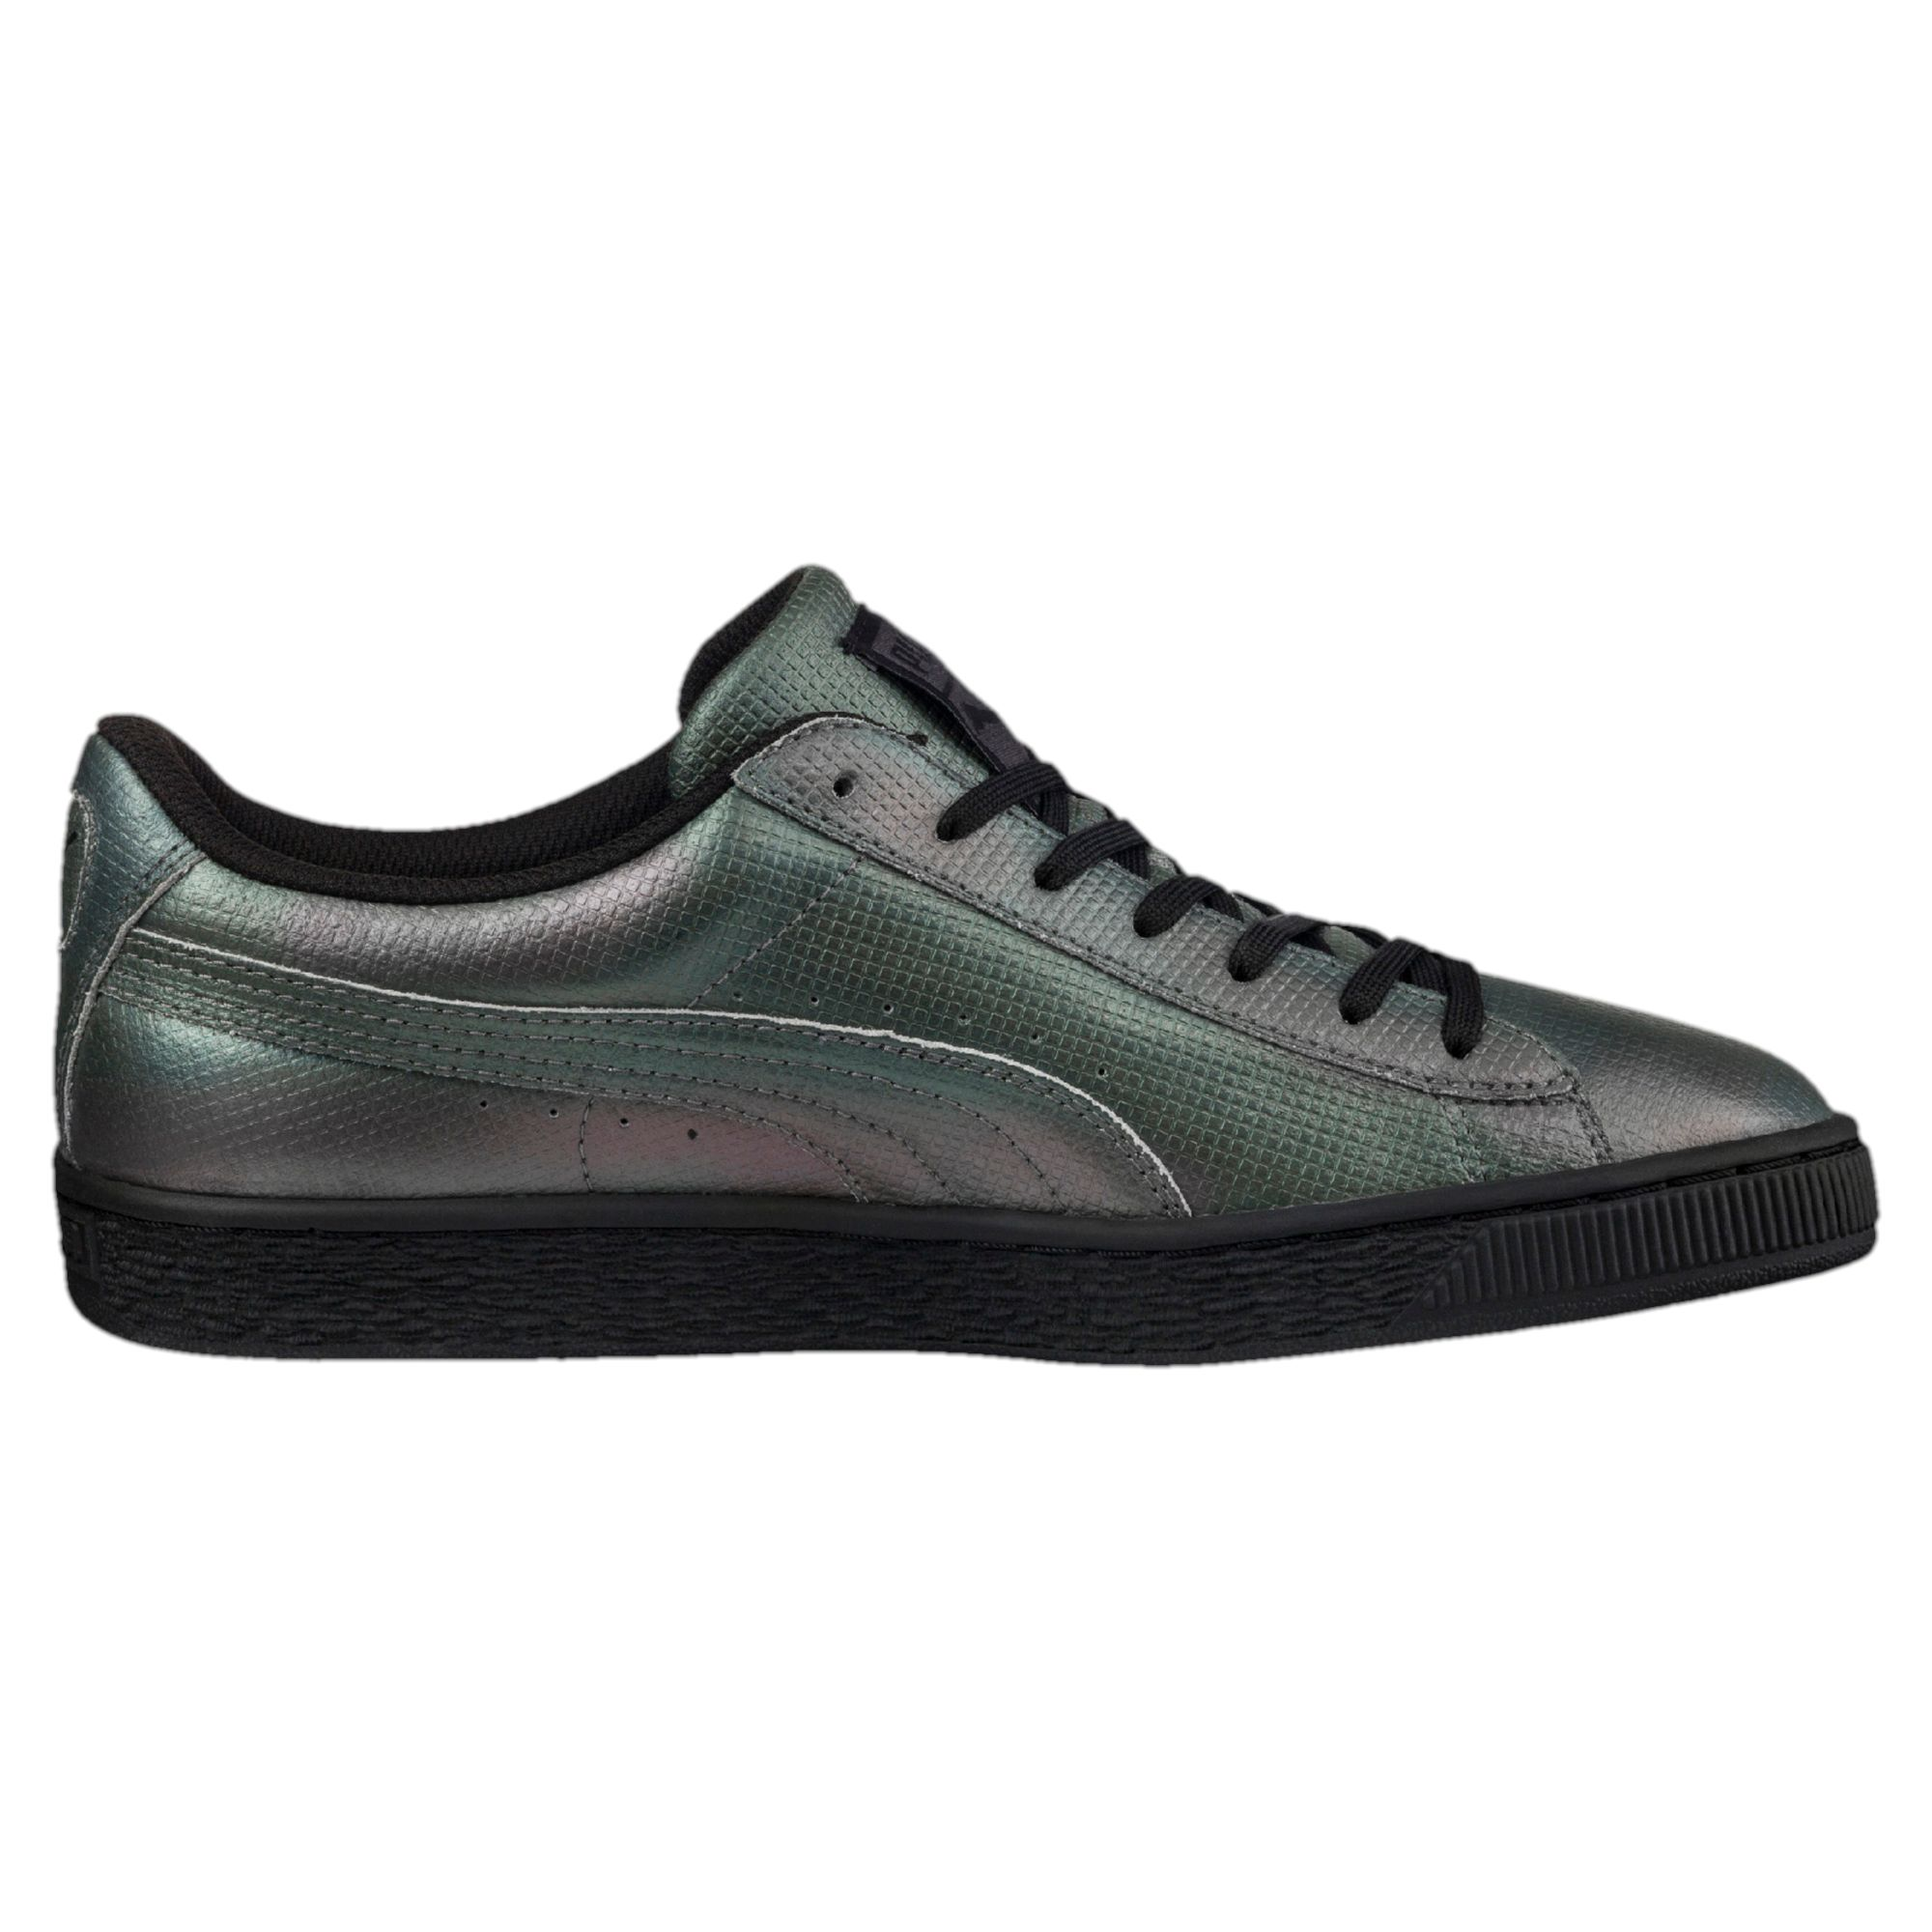 check out 43077 f4487 PUMA Basket Classic Holographic Trainers Sport Classics Low Boot ...